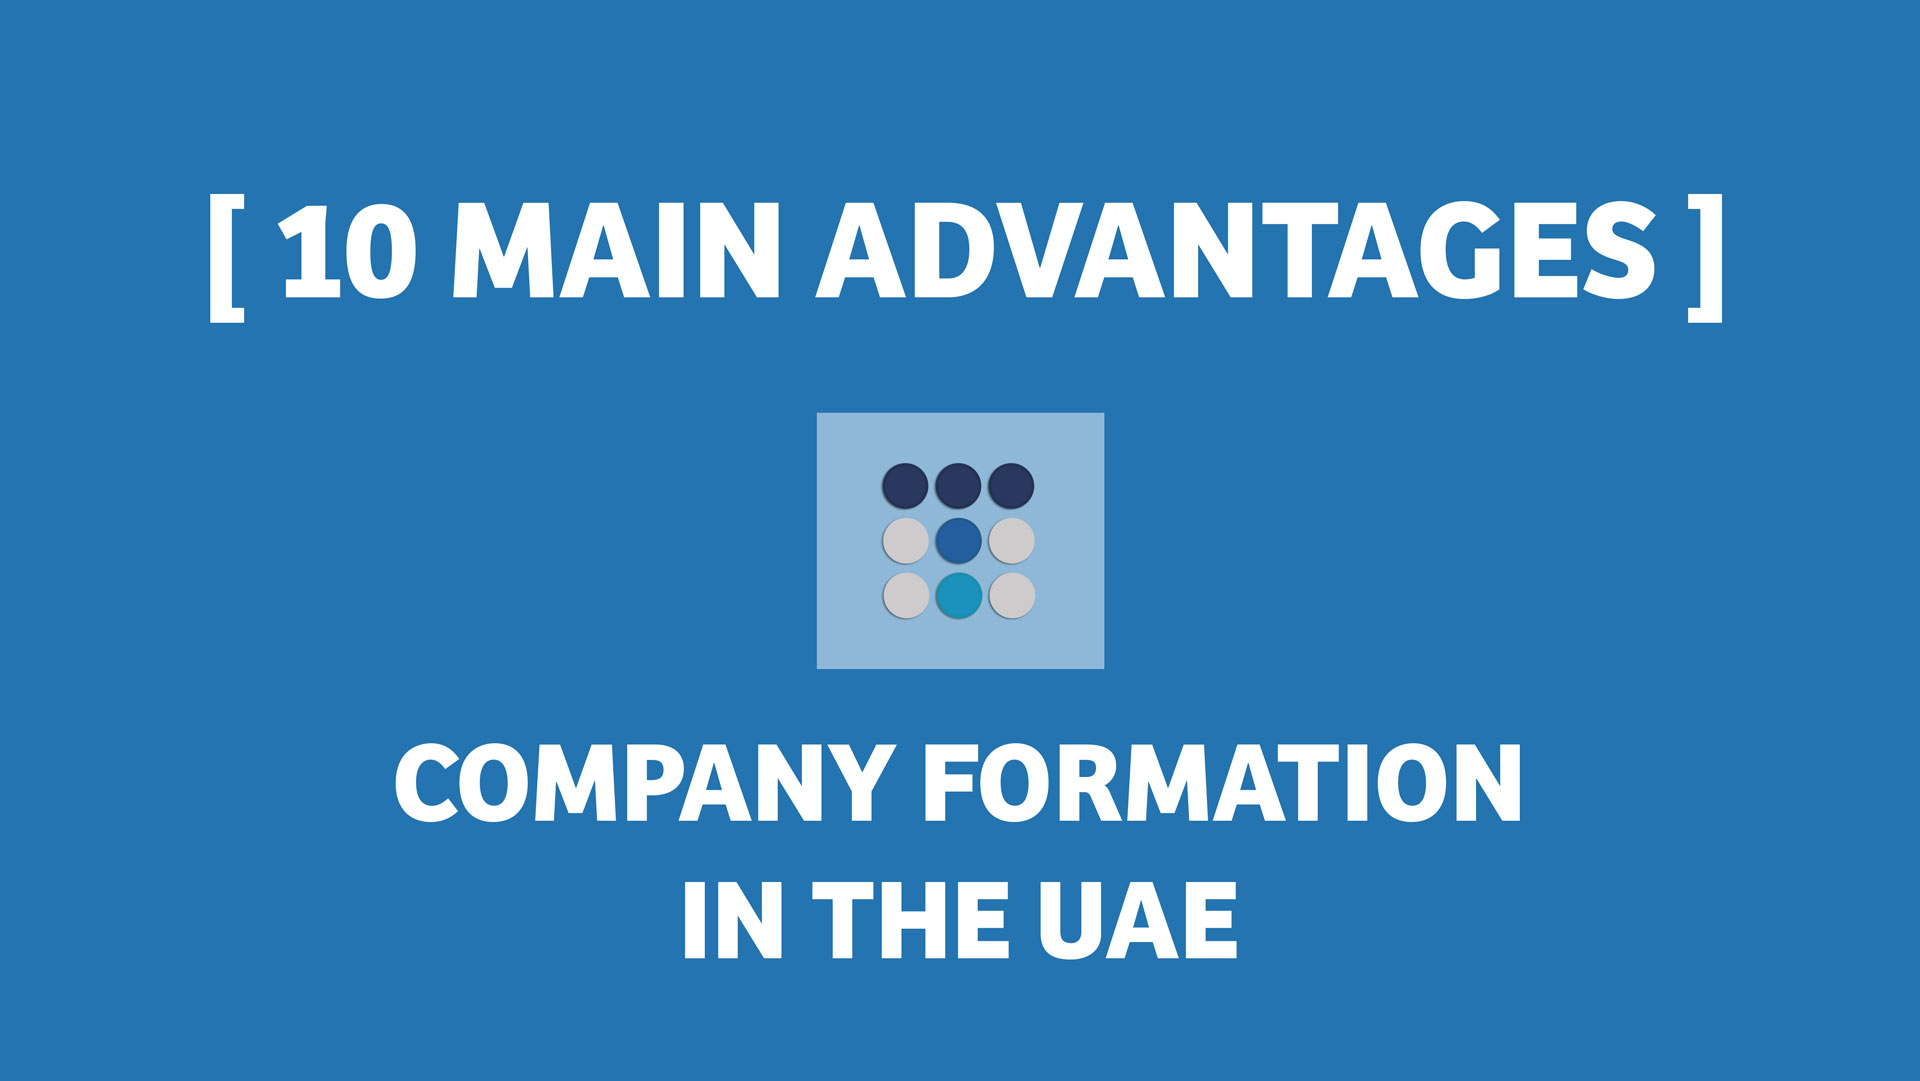 10 MAIN ADVANTAGES - COMPANY FORMATION IN THE UAE